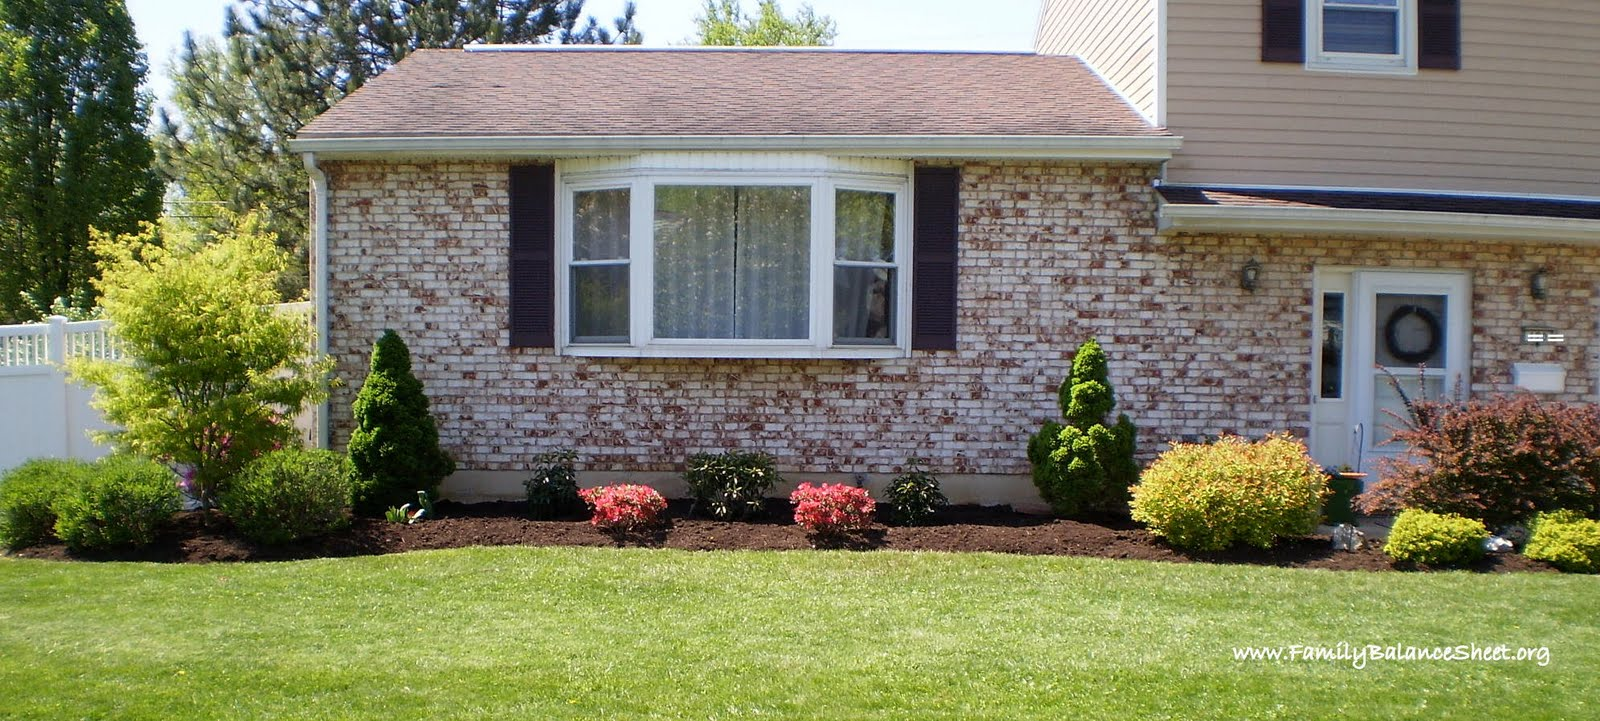 15 tips to help you design your front yard save money too for New house garden design ideas